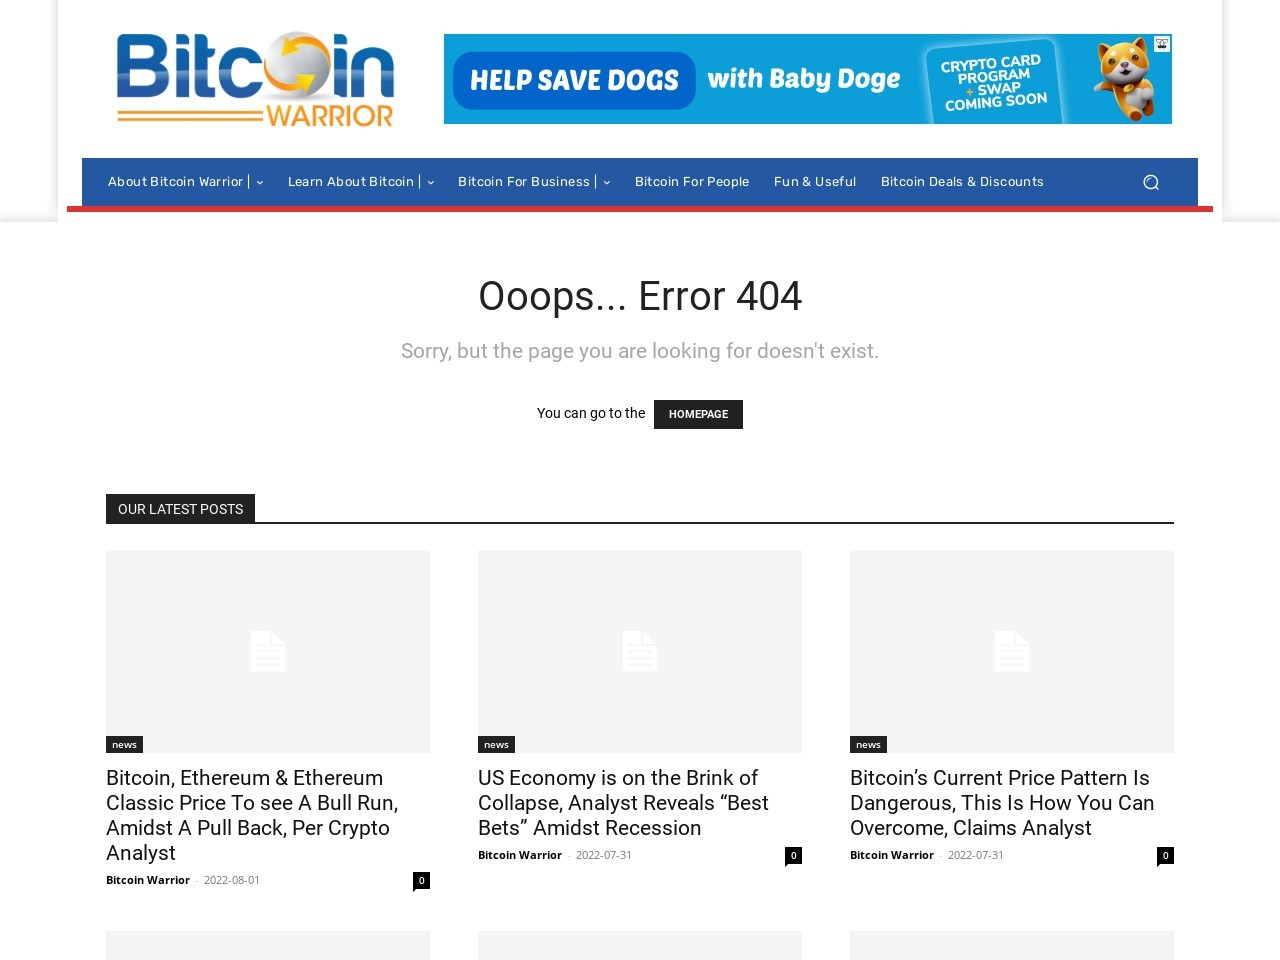 Bitcoin futures daily volume on Binance reaches new all-time high